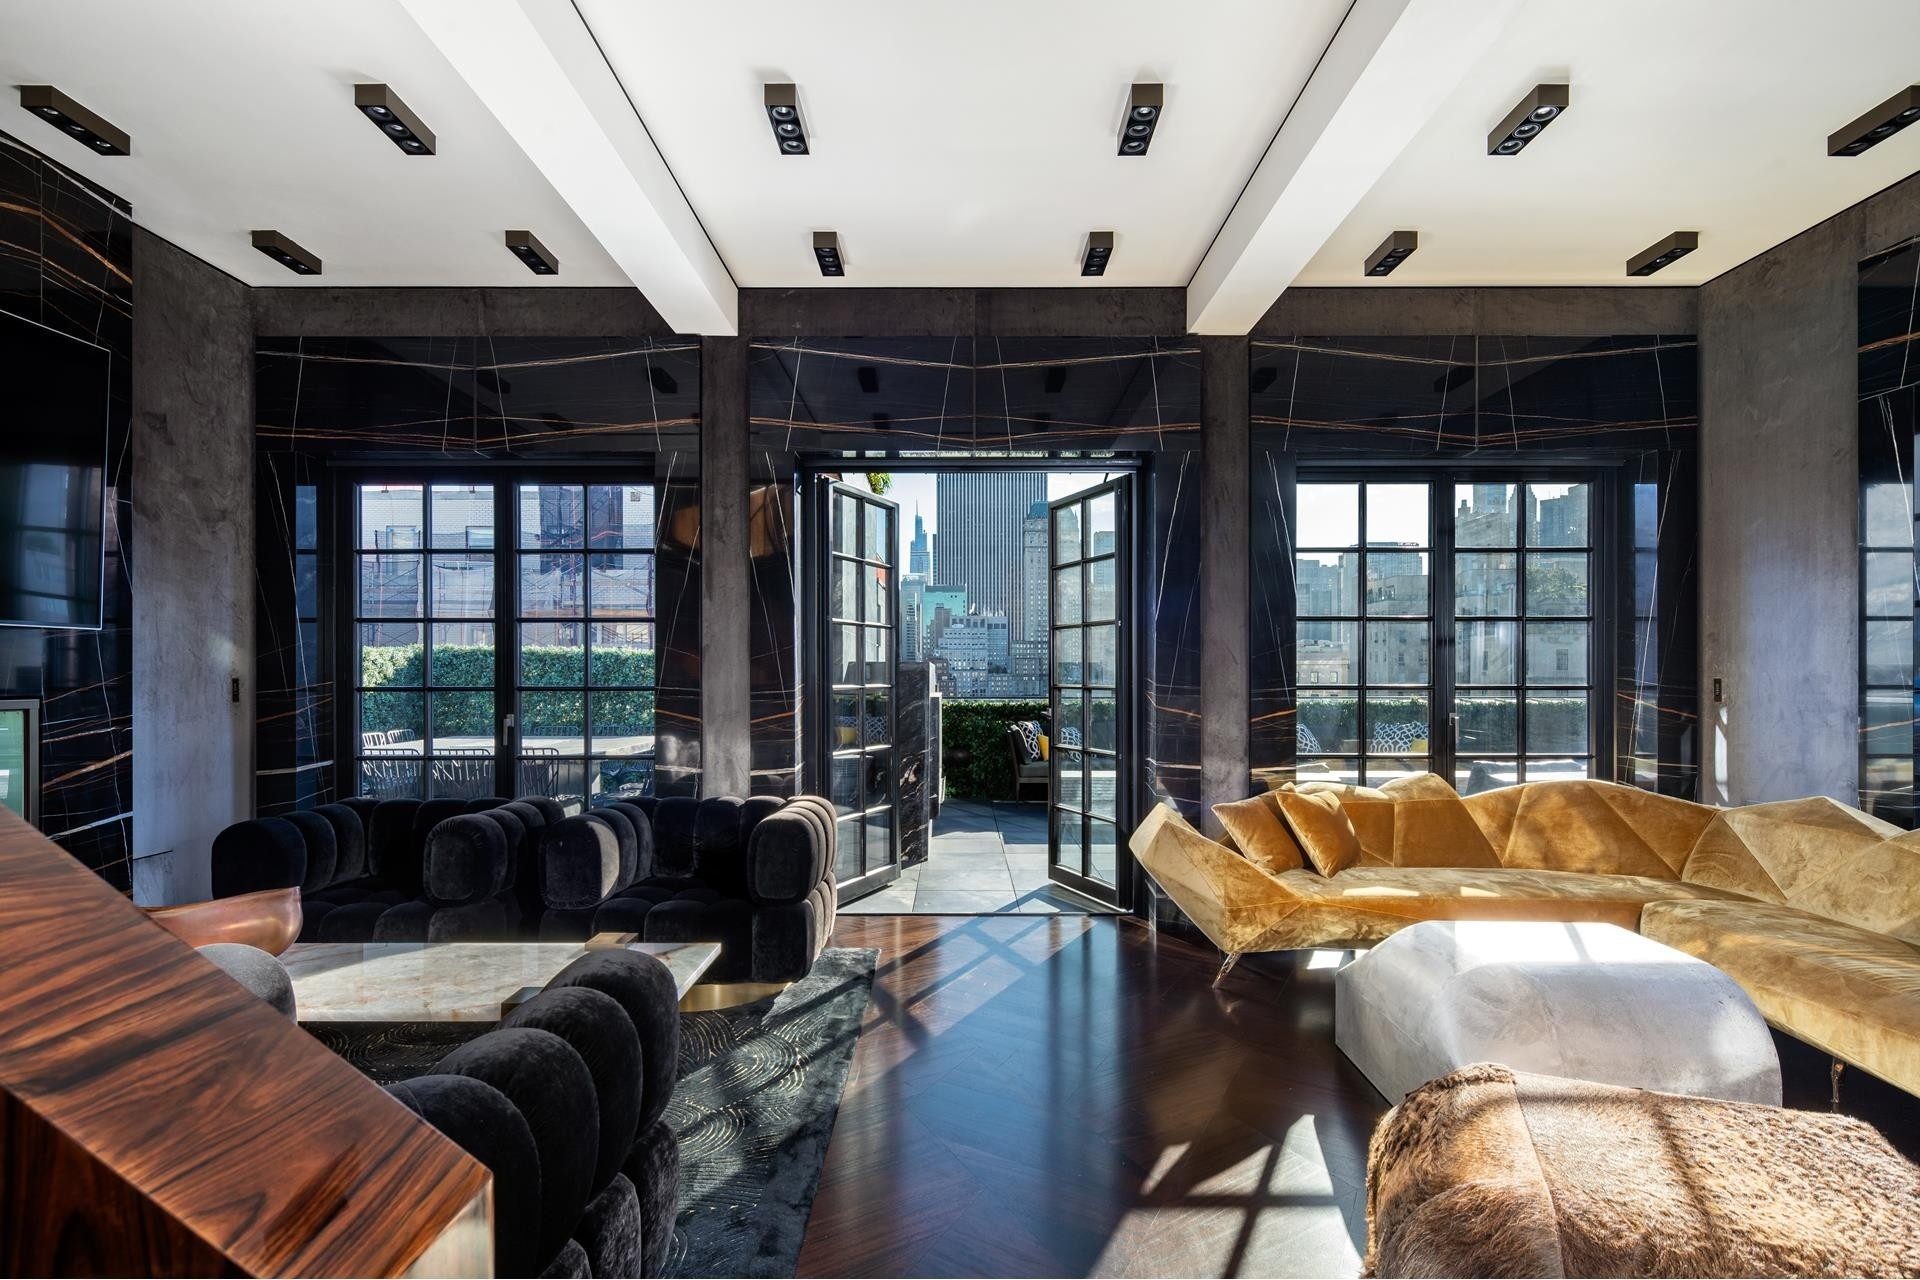 Property à The Marquand, 11 E 68TH ST , PHW Lenox Hill, New York, NY 10065